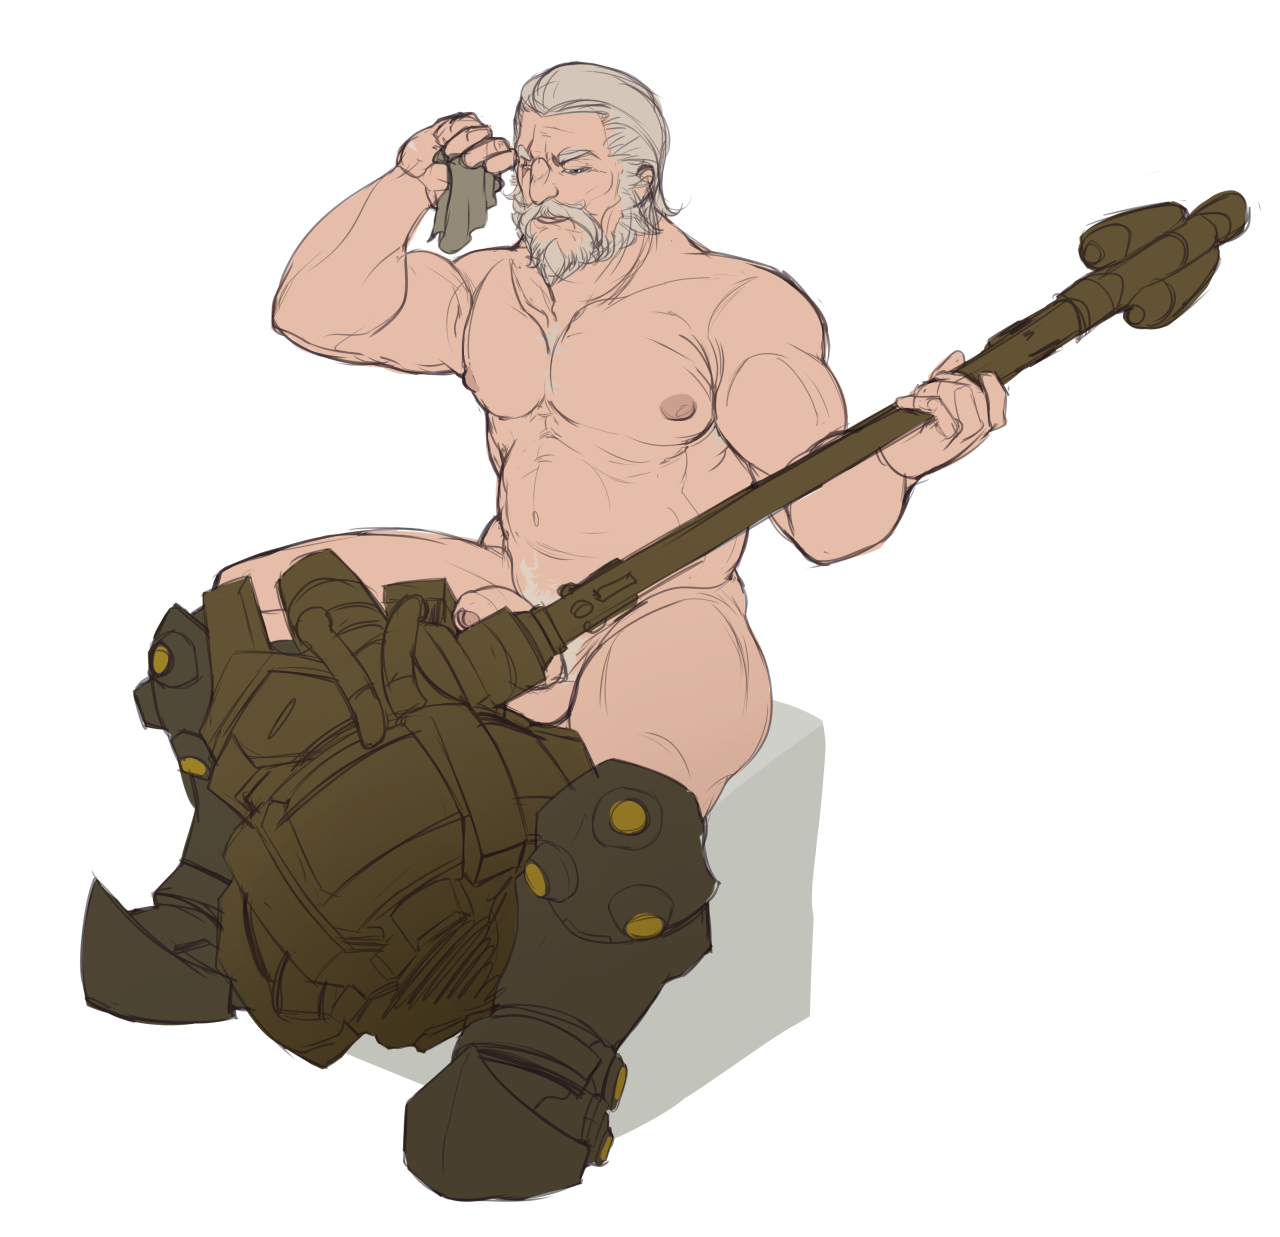 Overlook Reinhardt